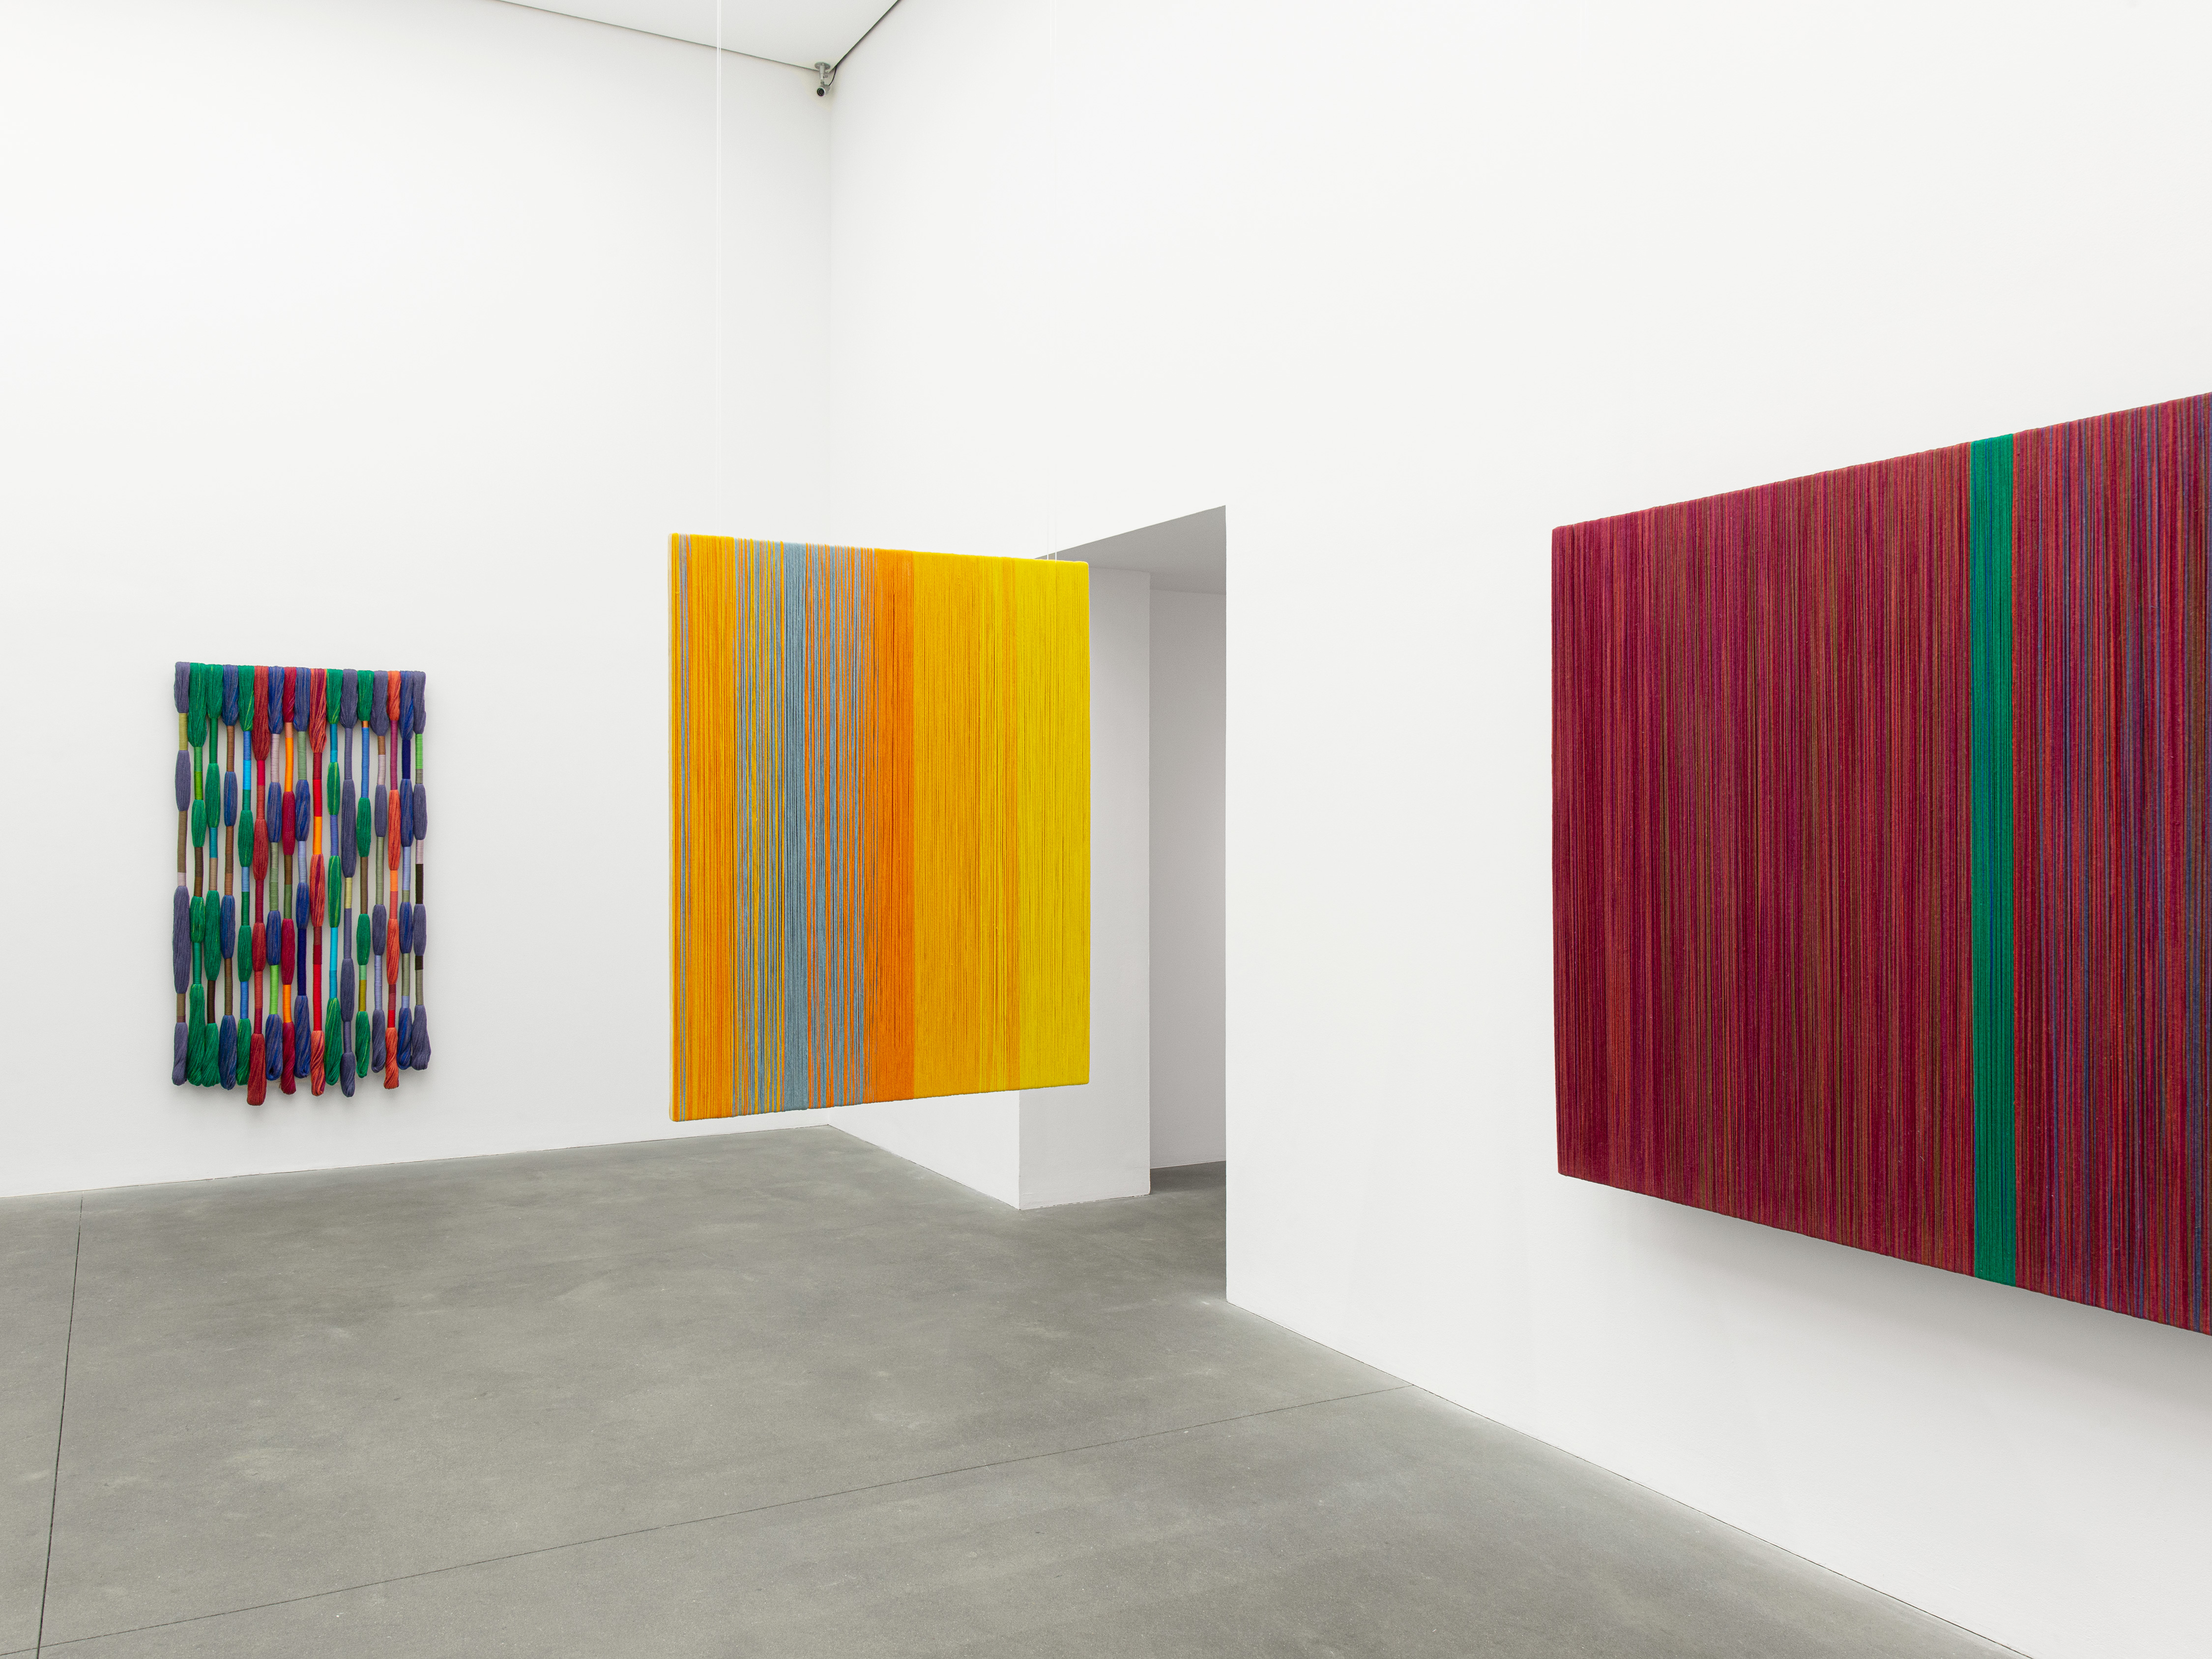 Installation view: SHEILA HICKS: MUSIC TO MY EYES, Alison Jacques, 4 June–31 July 2021. Courtesy: © Sheila Hicks